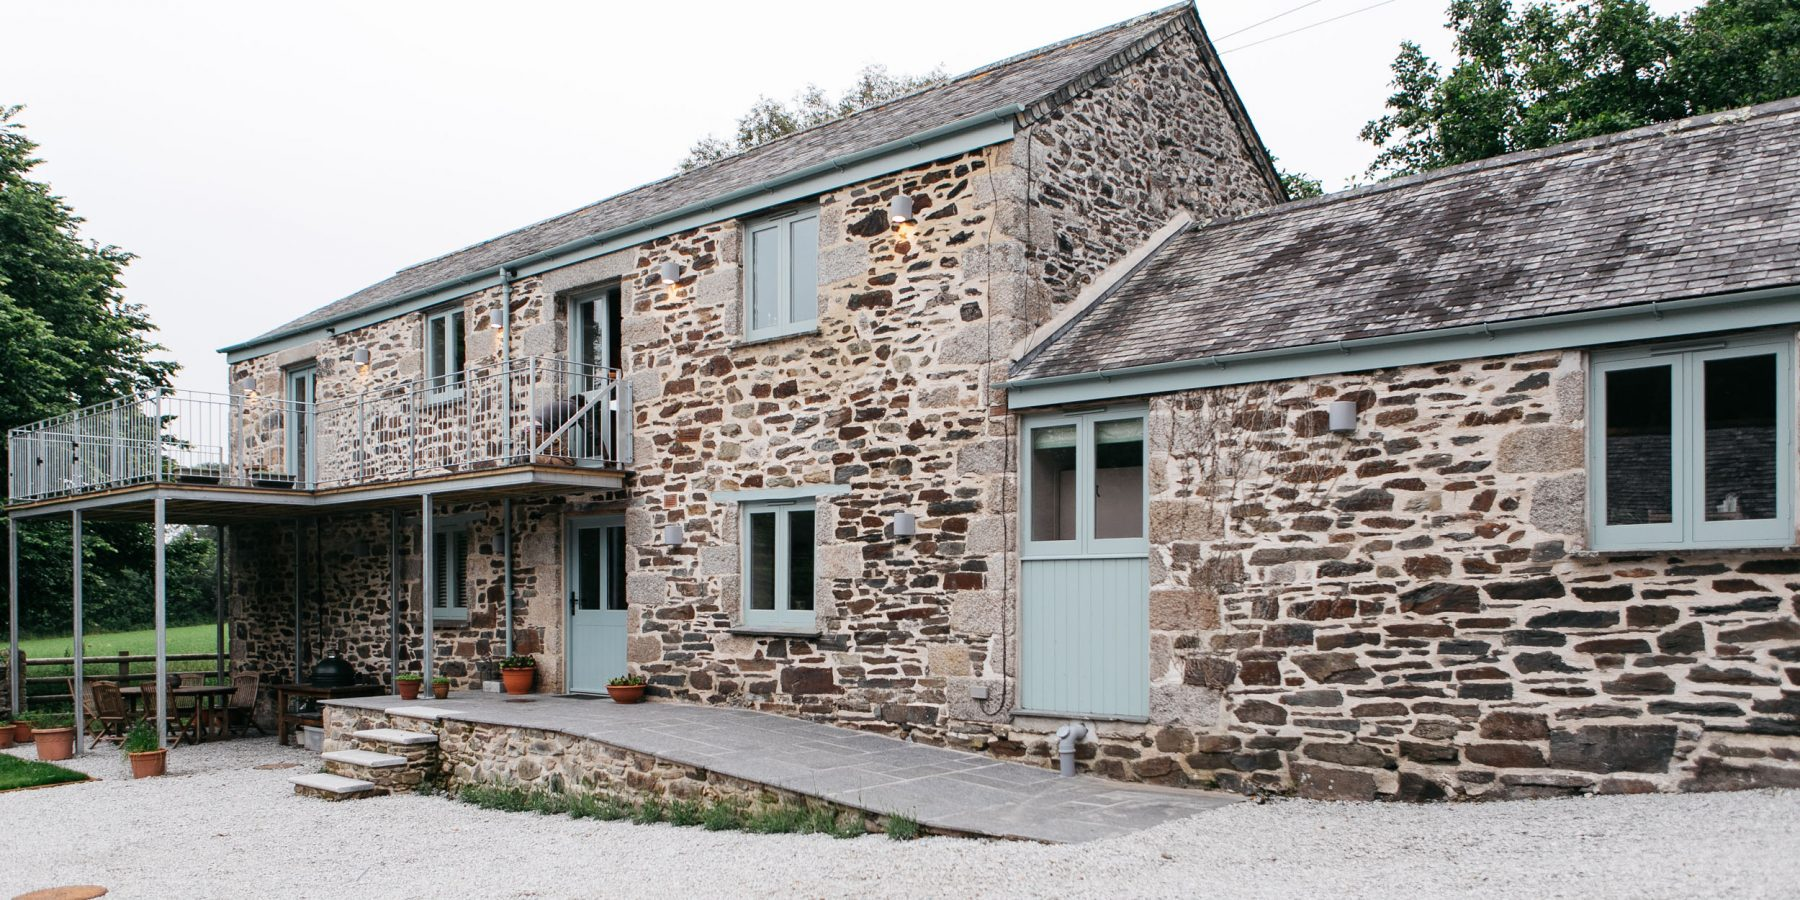 Cornish stone house with blue painted windows and doors